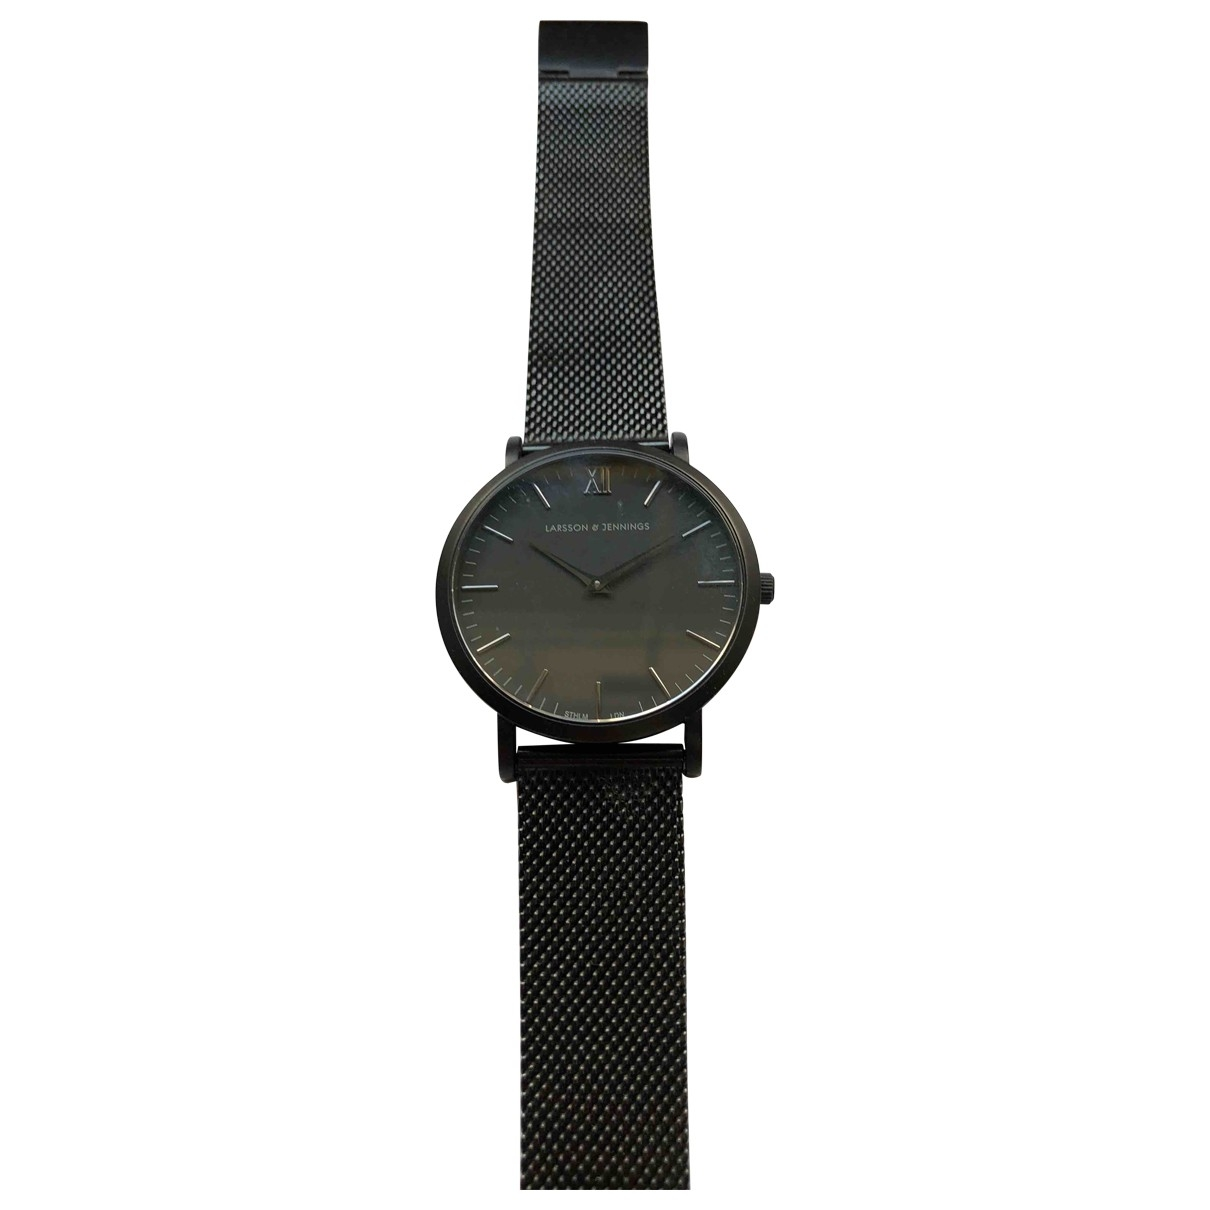 Larsson & Jennings \N Black Steel watch for Men \N